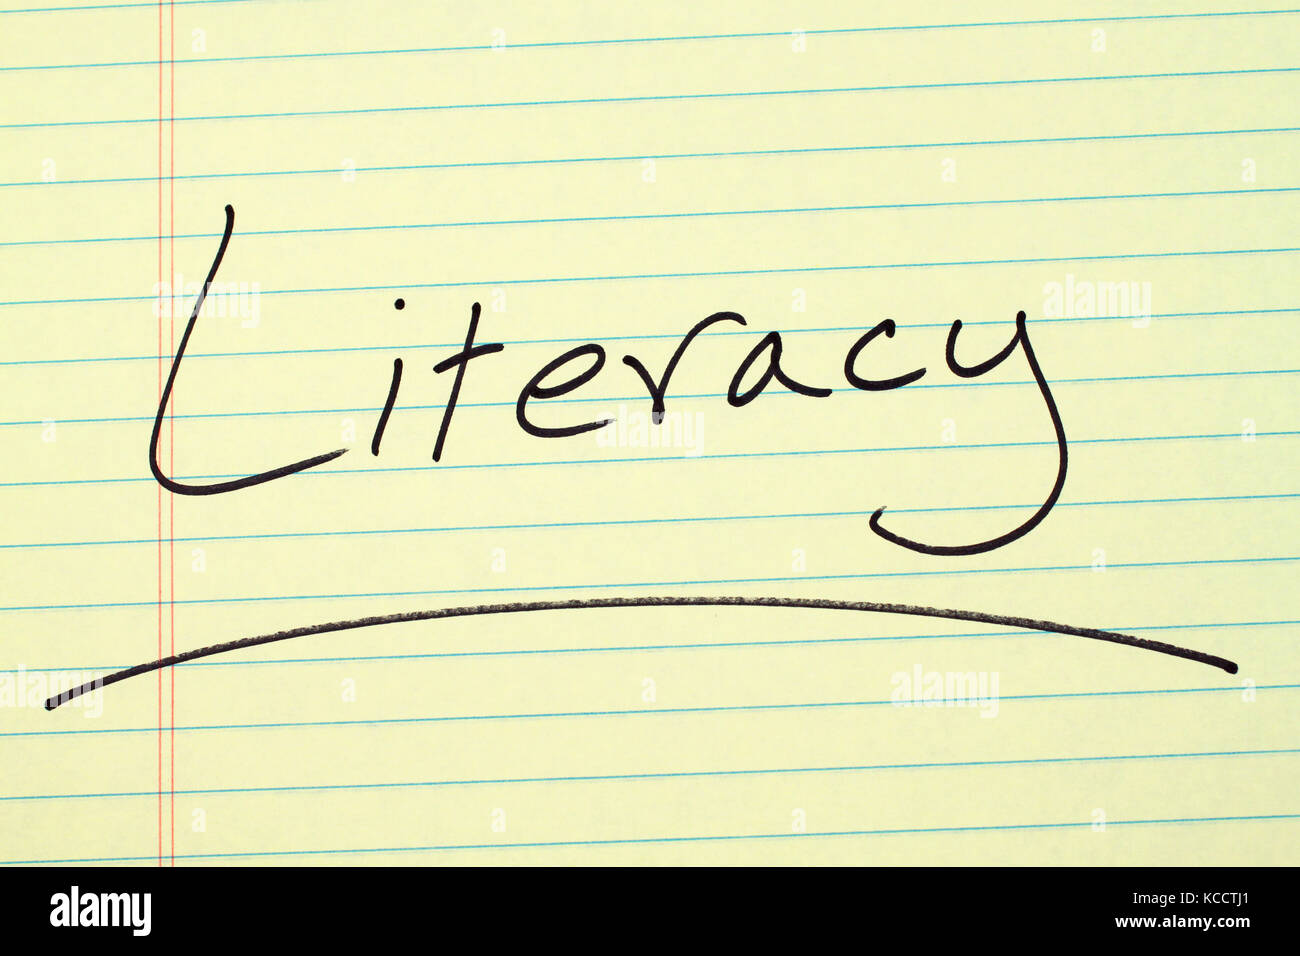 The word 'Literacy' underlined on a yellow legal pad - Stock Image